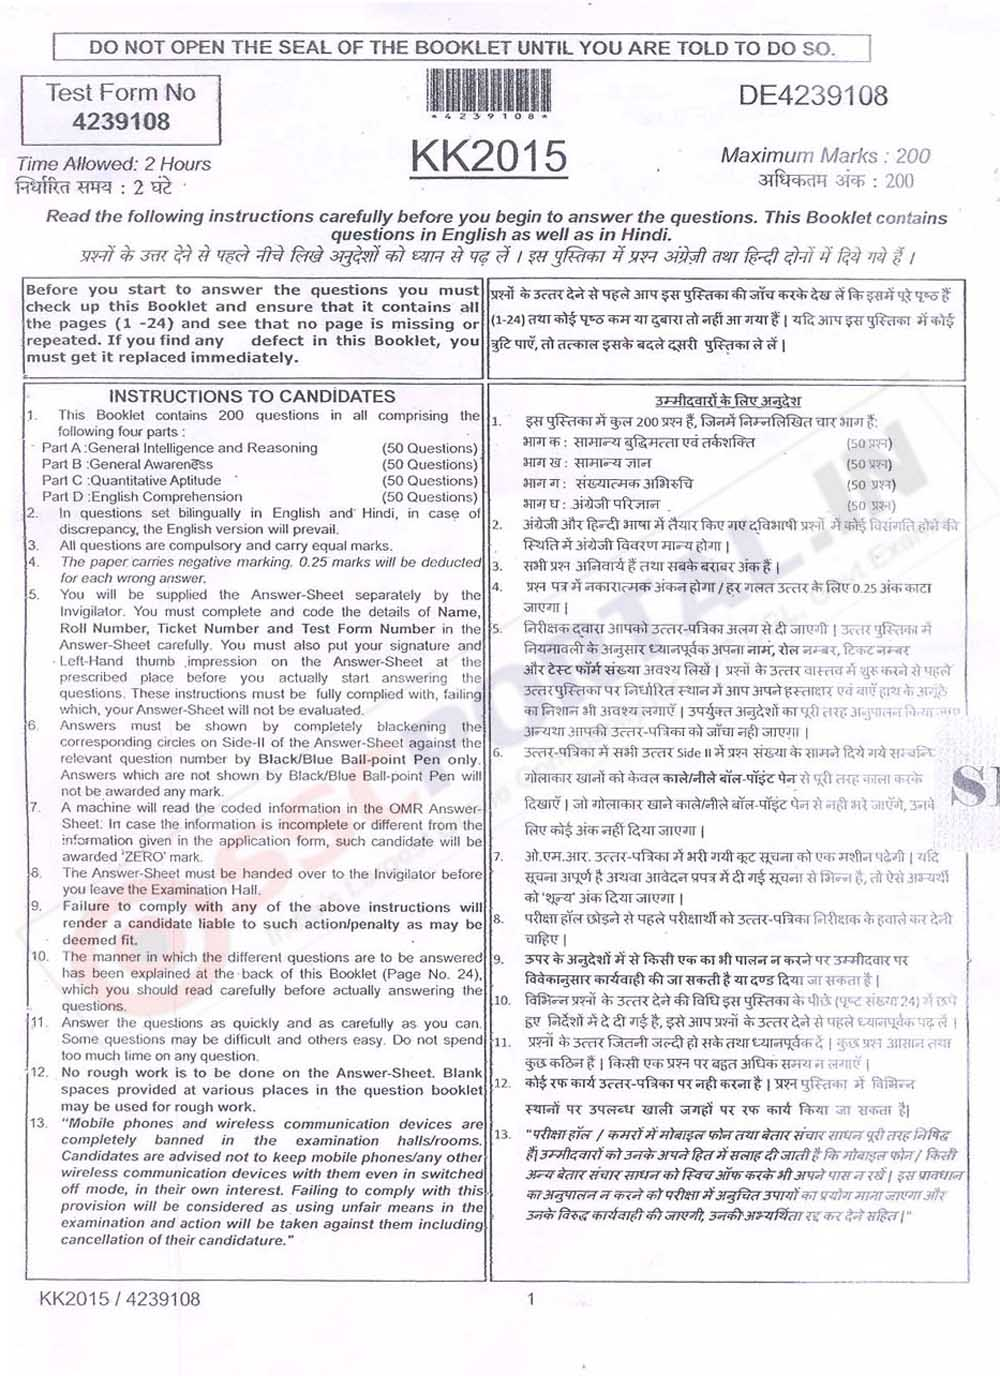 download ssc cgl tier 1 exam paper 2015 held on 9 8 2015